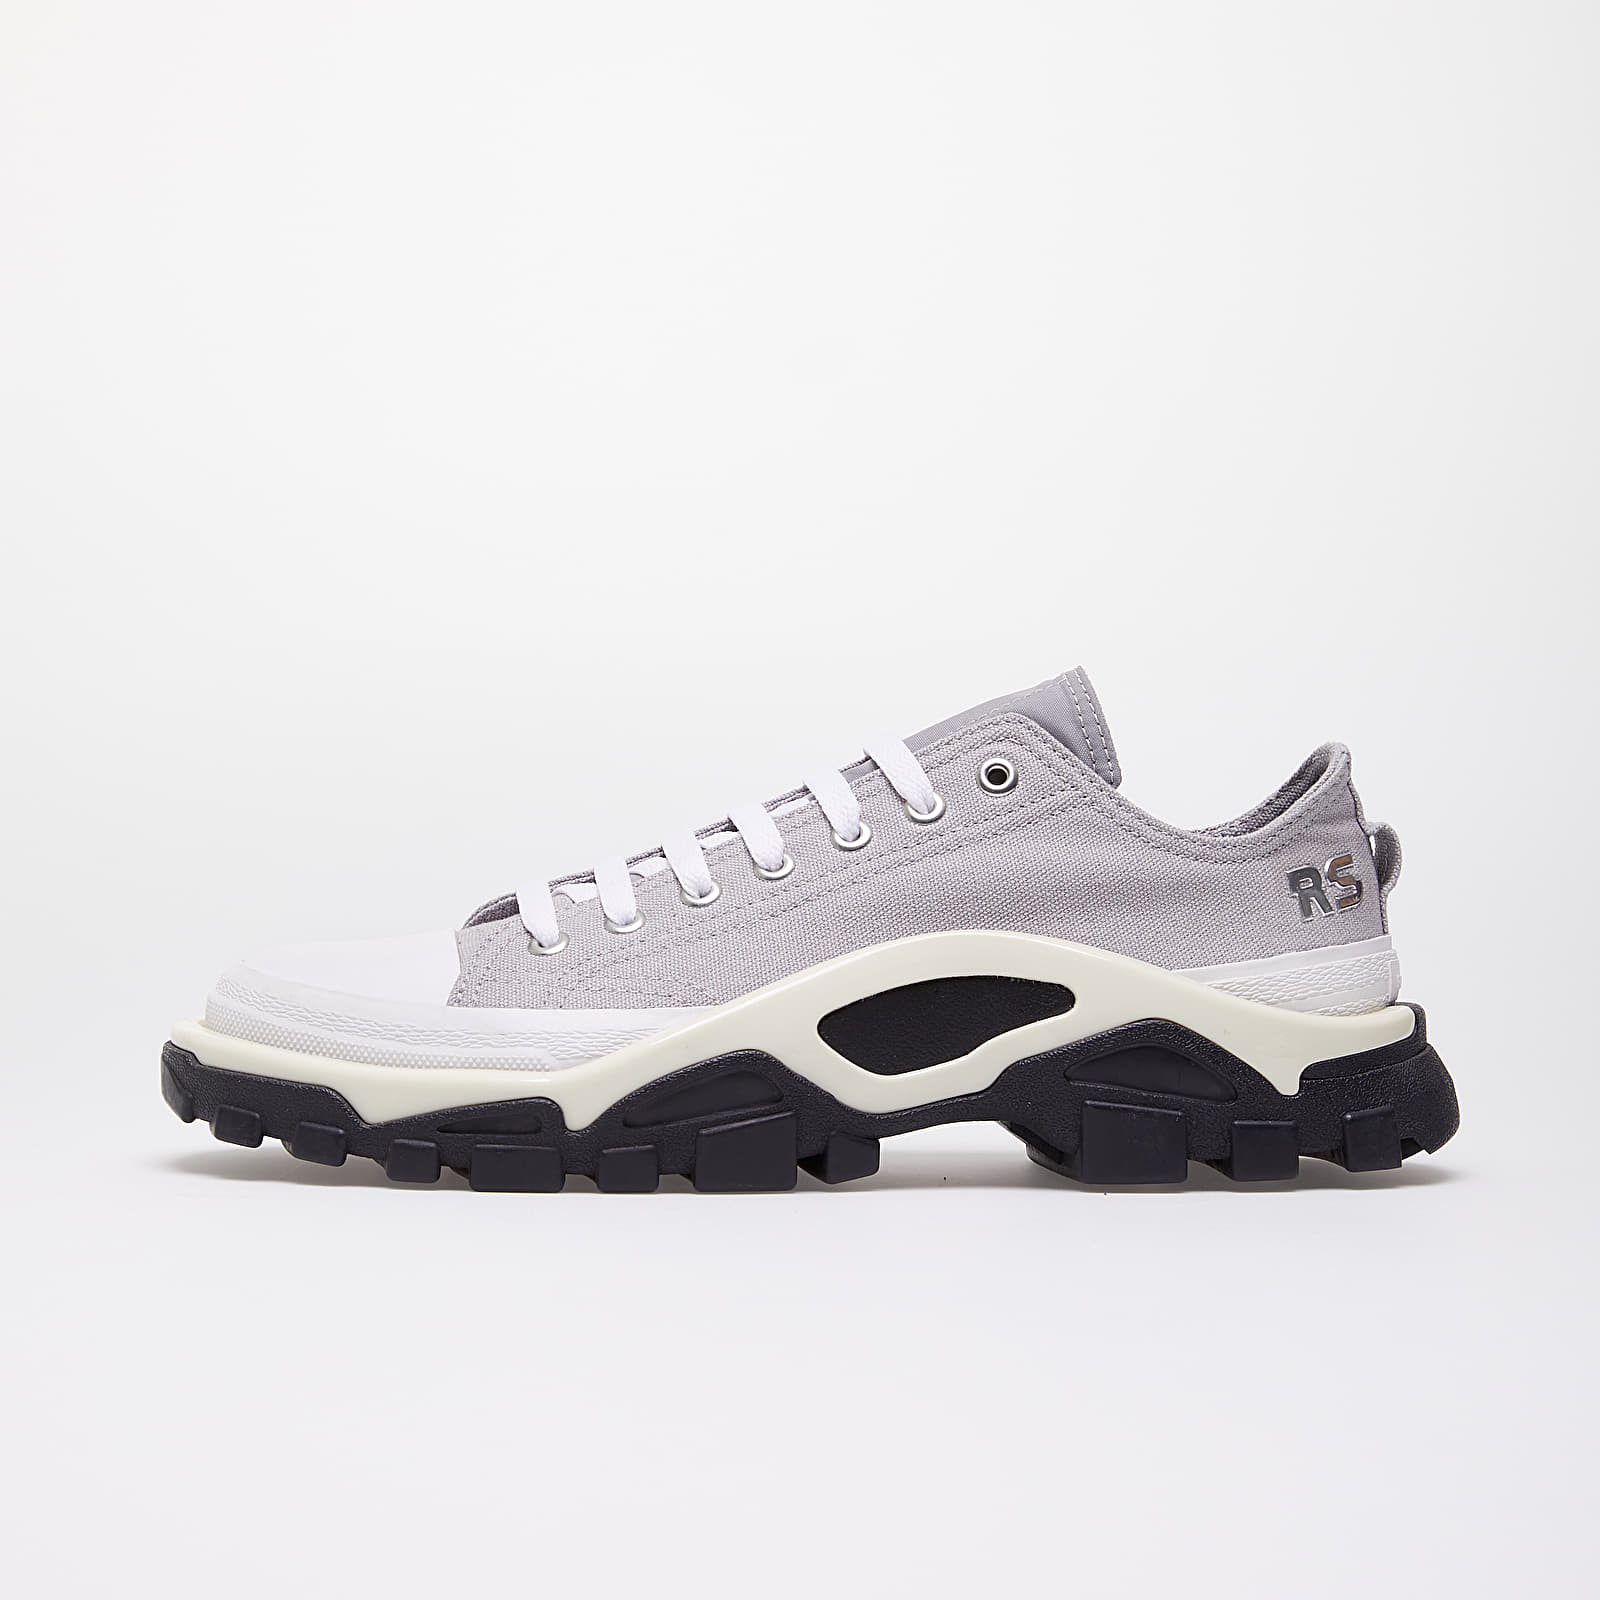 Men's shoes adidas x Raf Simons Detroit Runner Light Granite/ Silver Metallic/ Core White